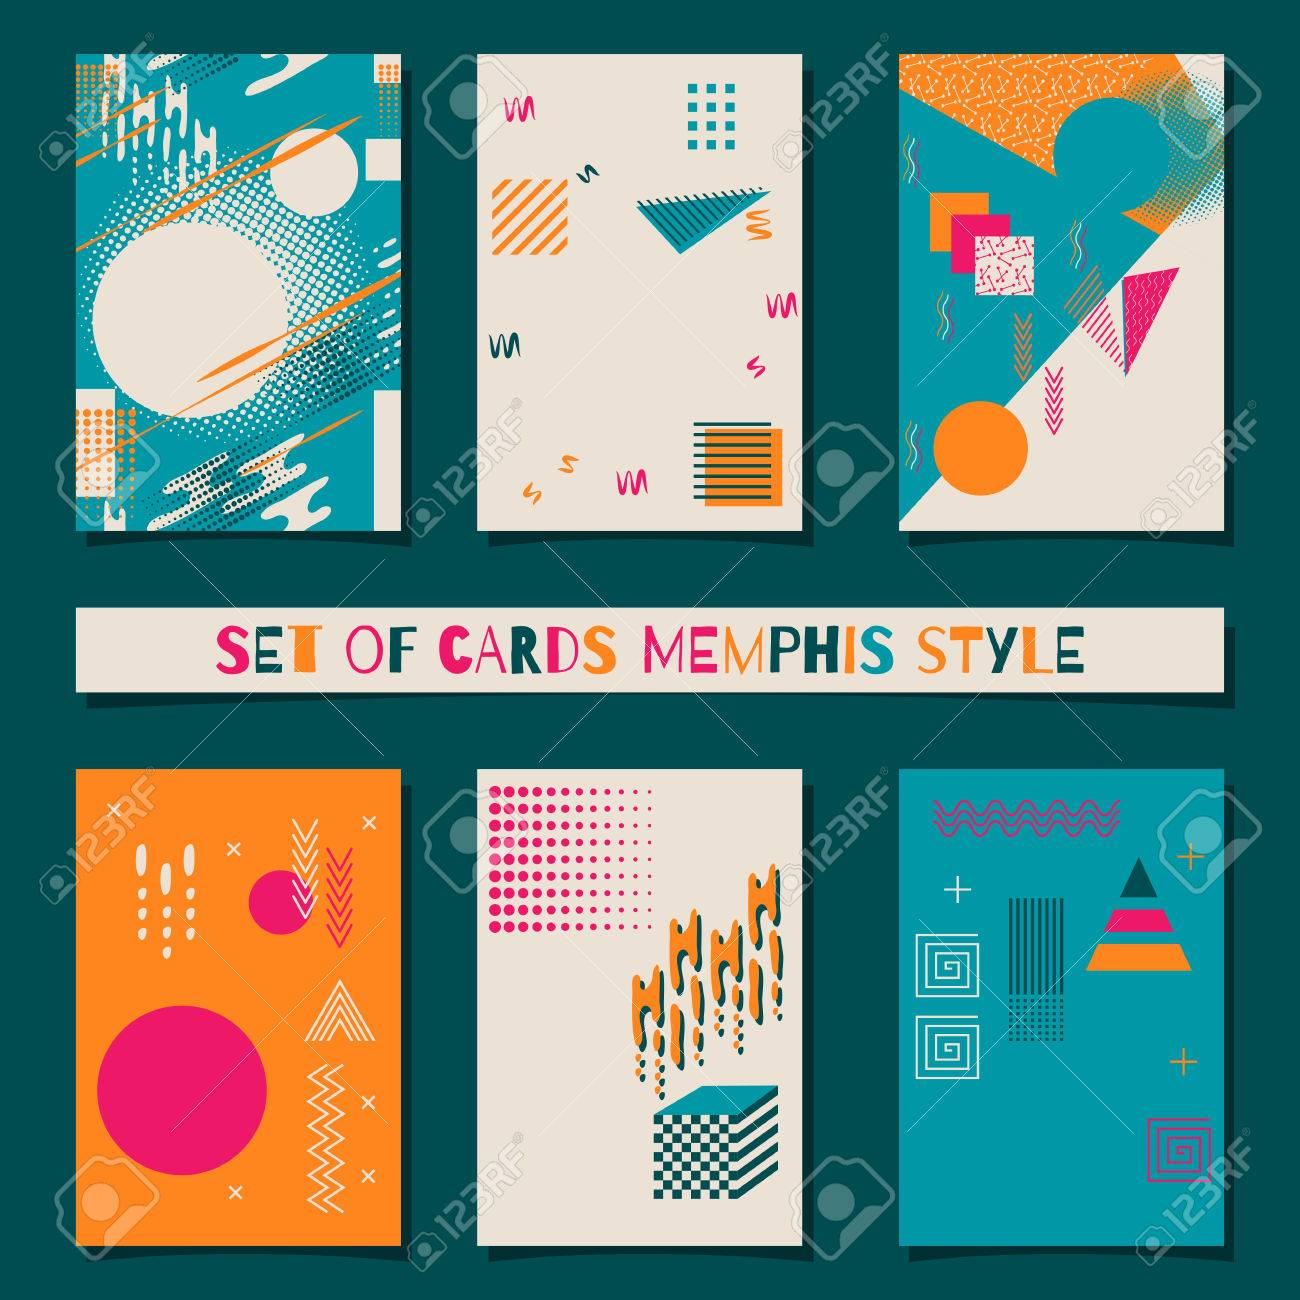 set of cards memphis style background with trendy geometric elements